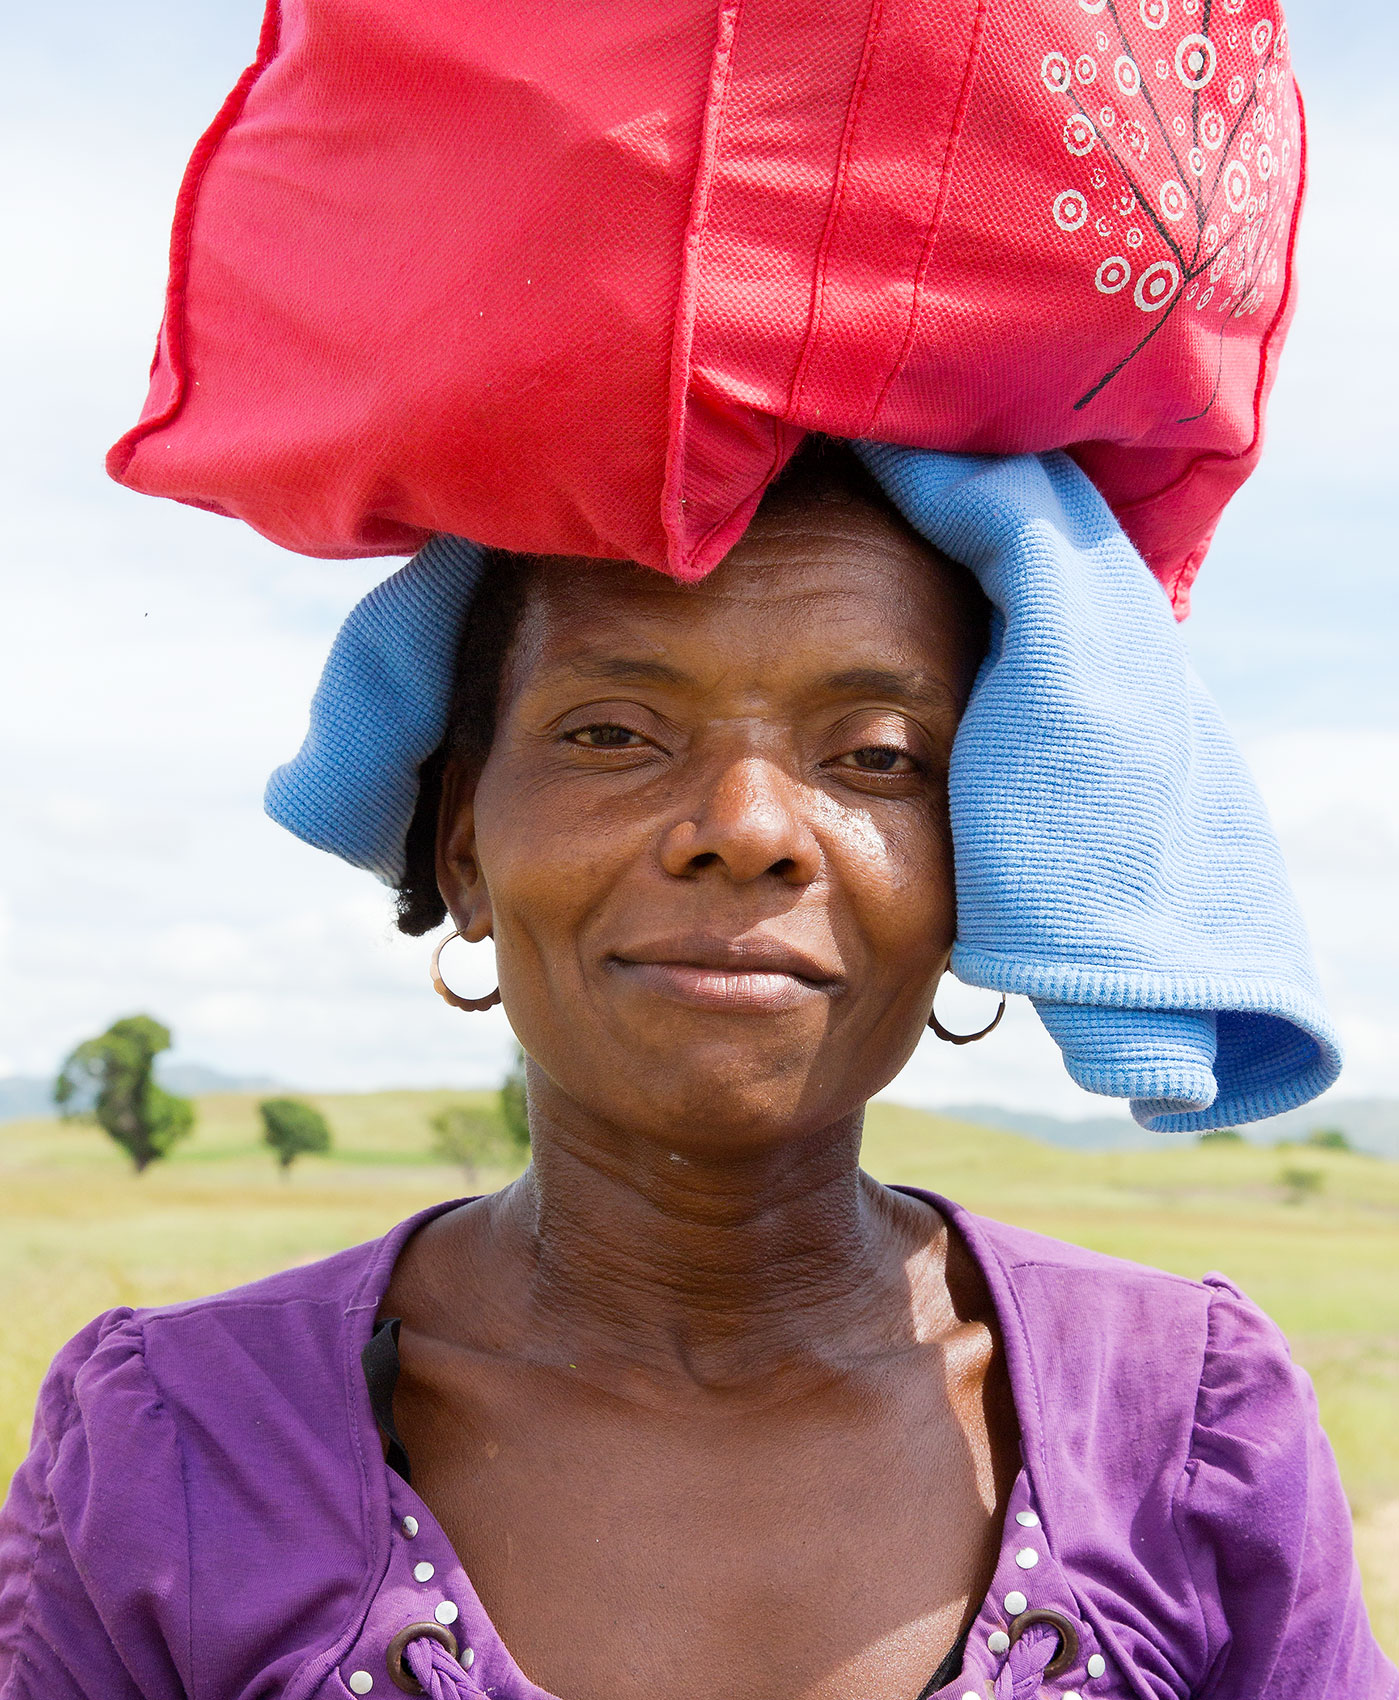 TRAVEL_HAITI_PORTRAIT_WOMAN_mother_hot_sun_target_bag_0797_WB2